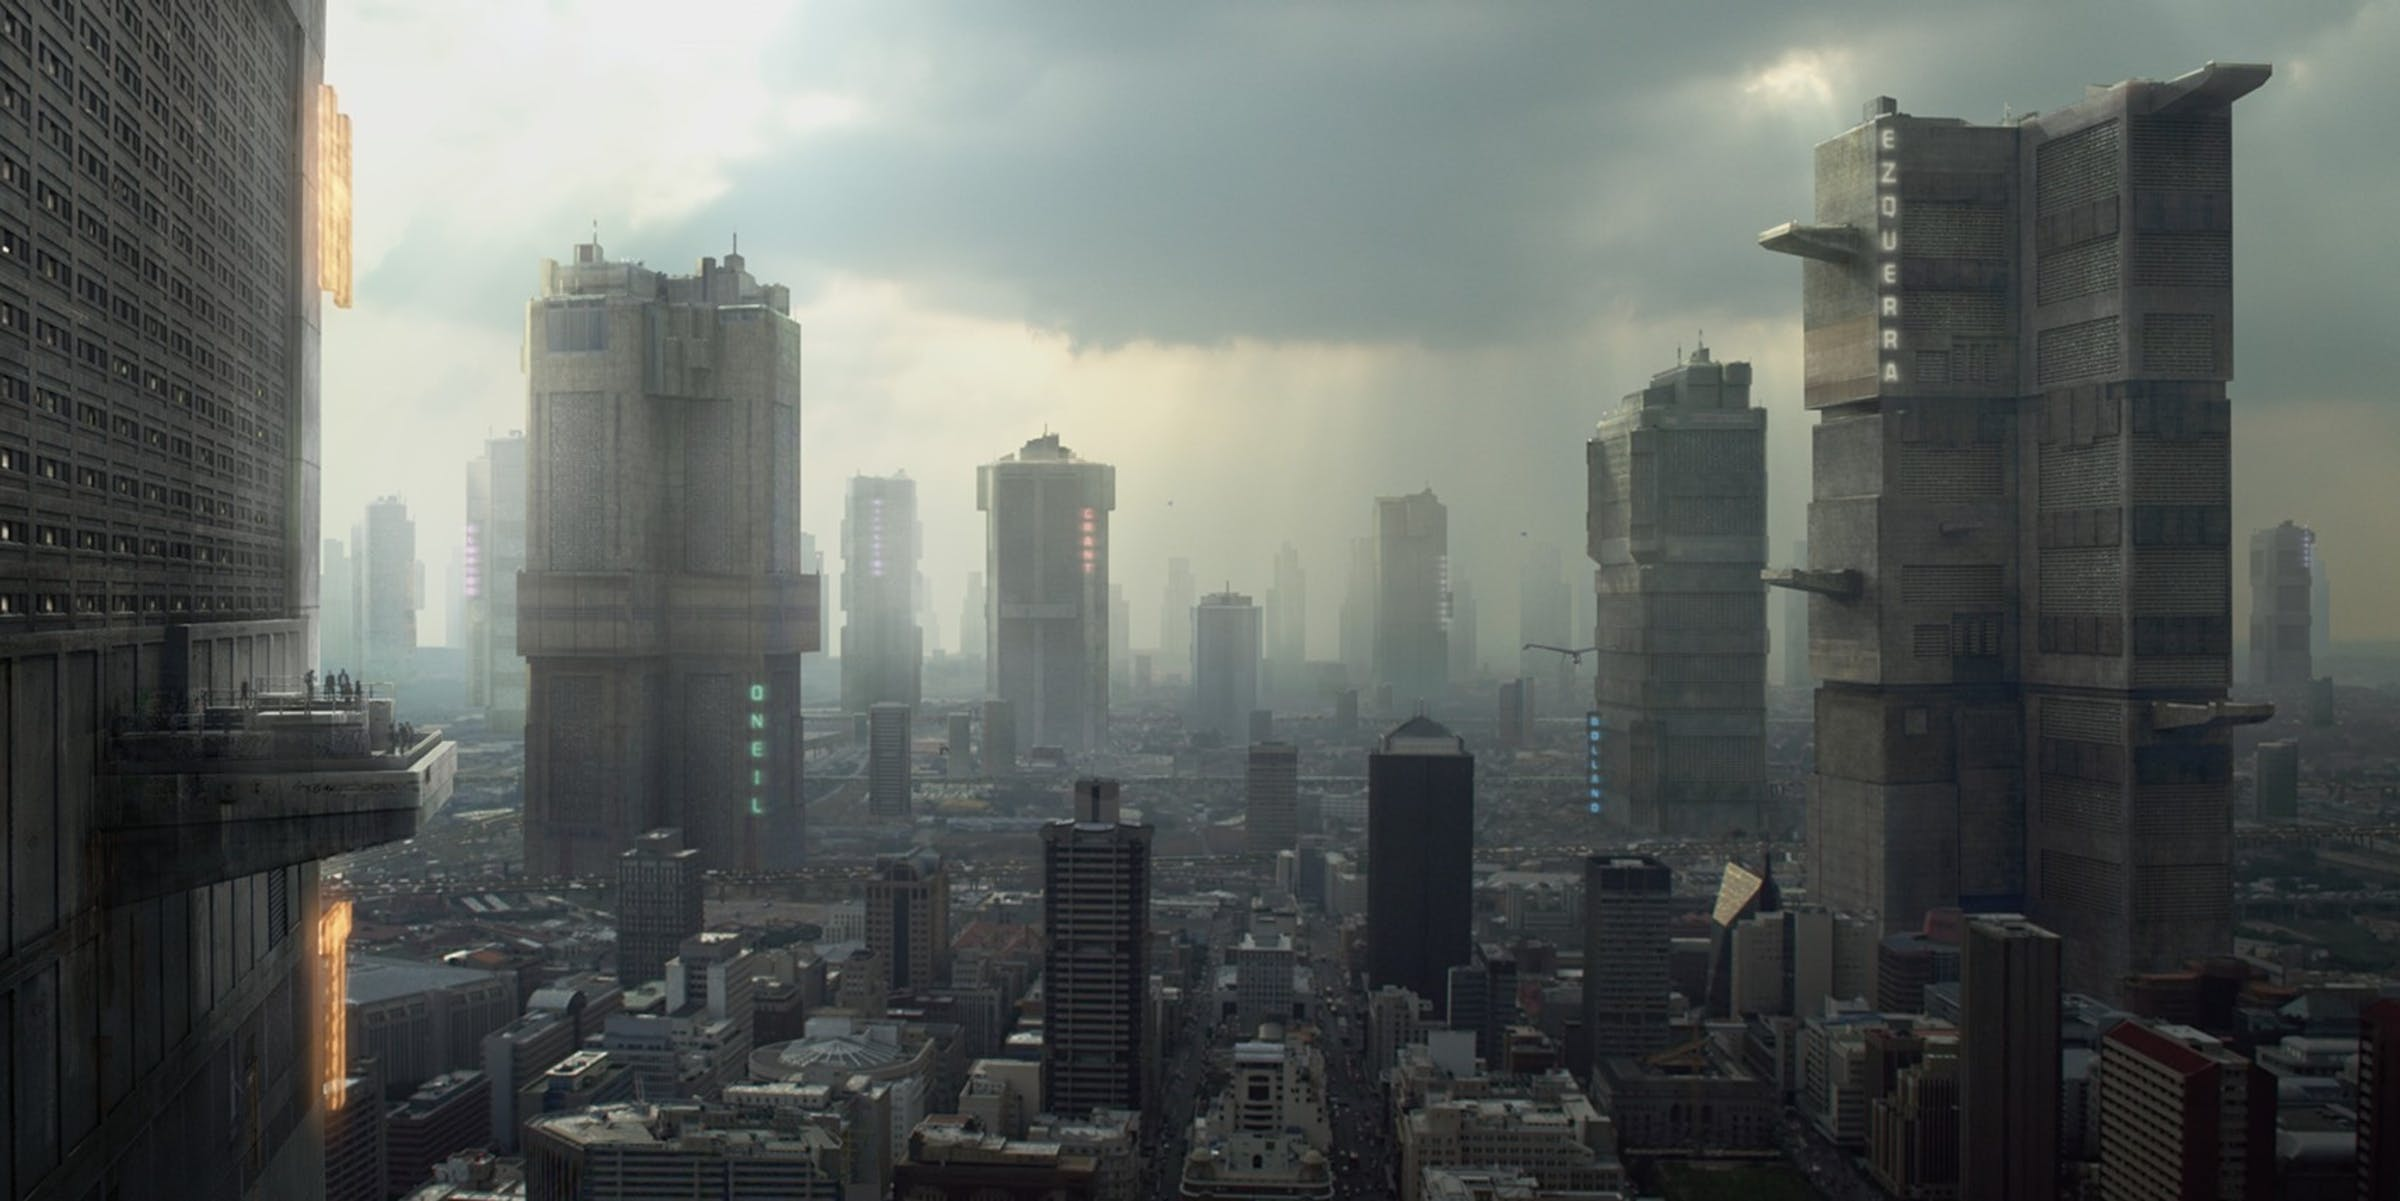 How Science Fiction Dystopias Became Blueprints for City ...